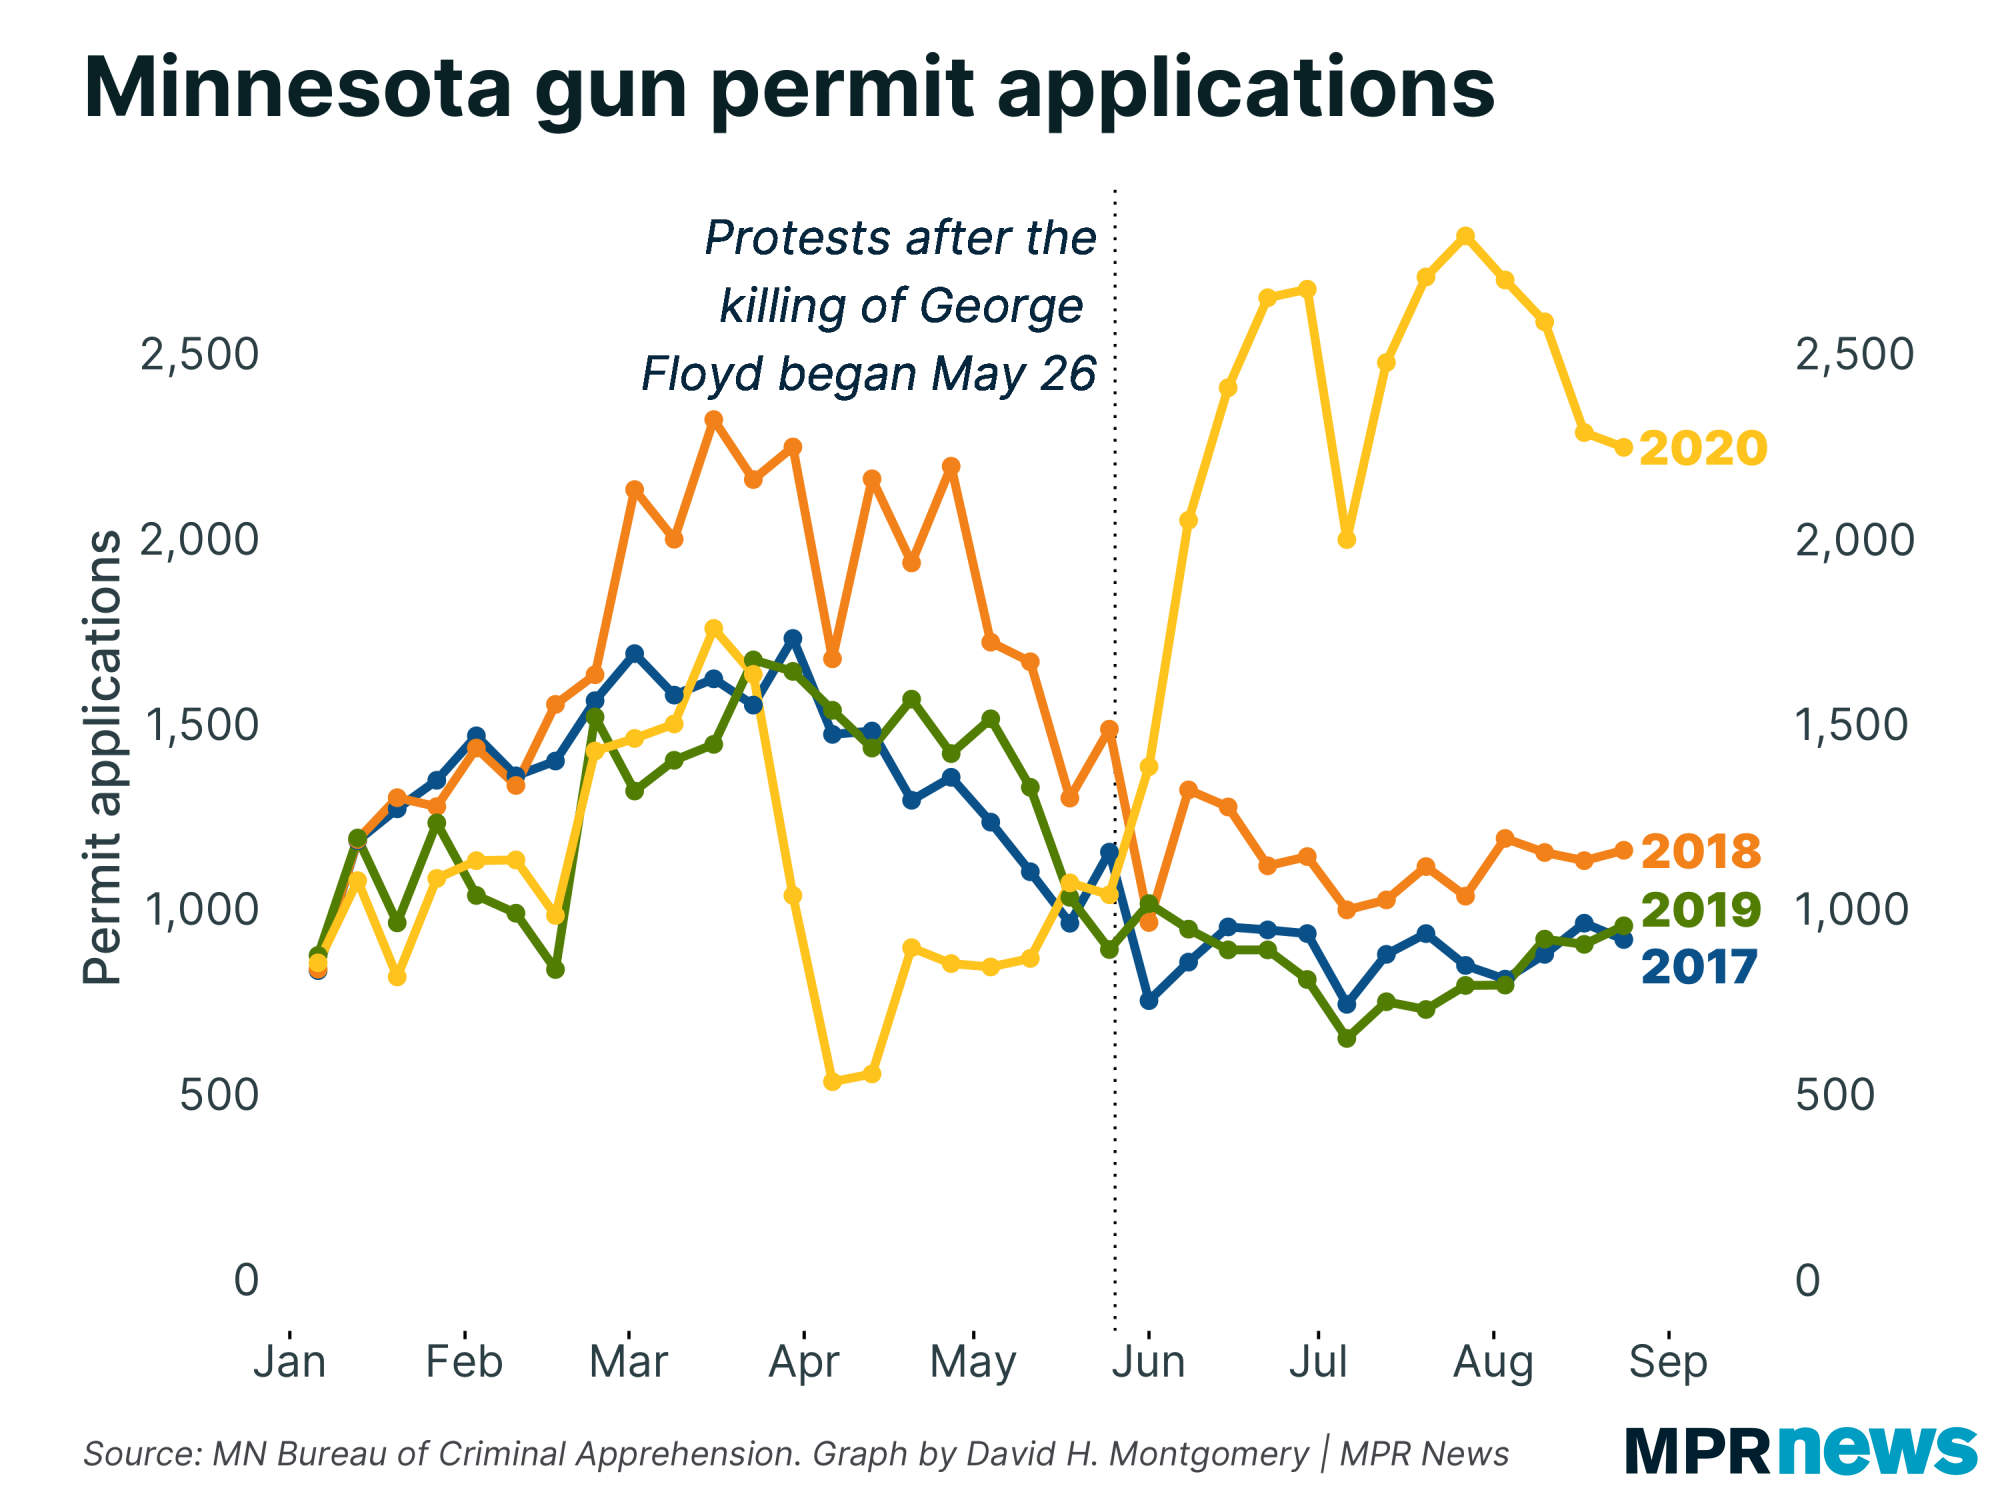 A graph showing the number of gun permit applications